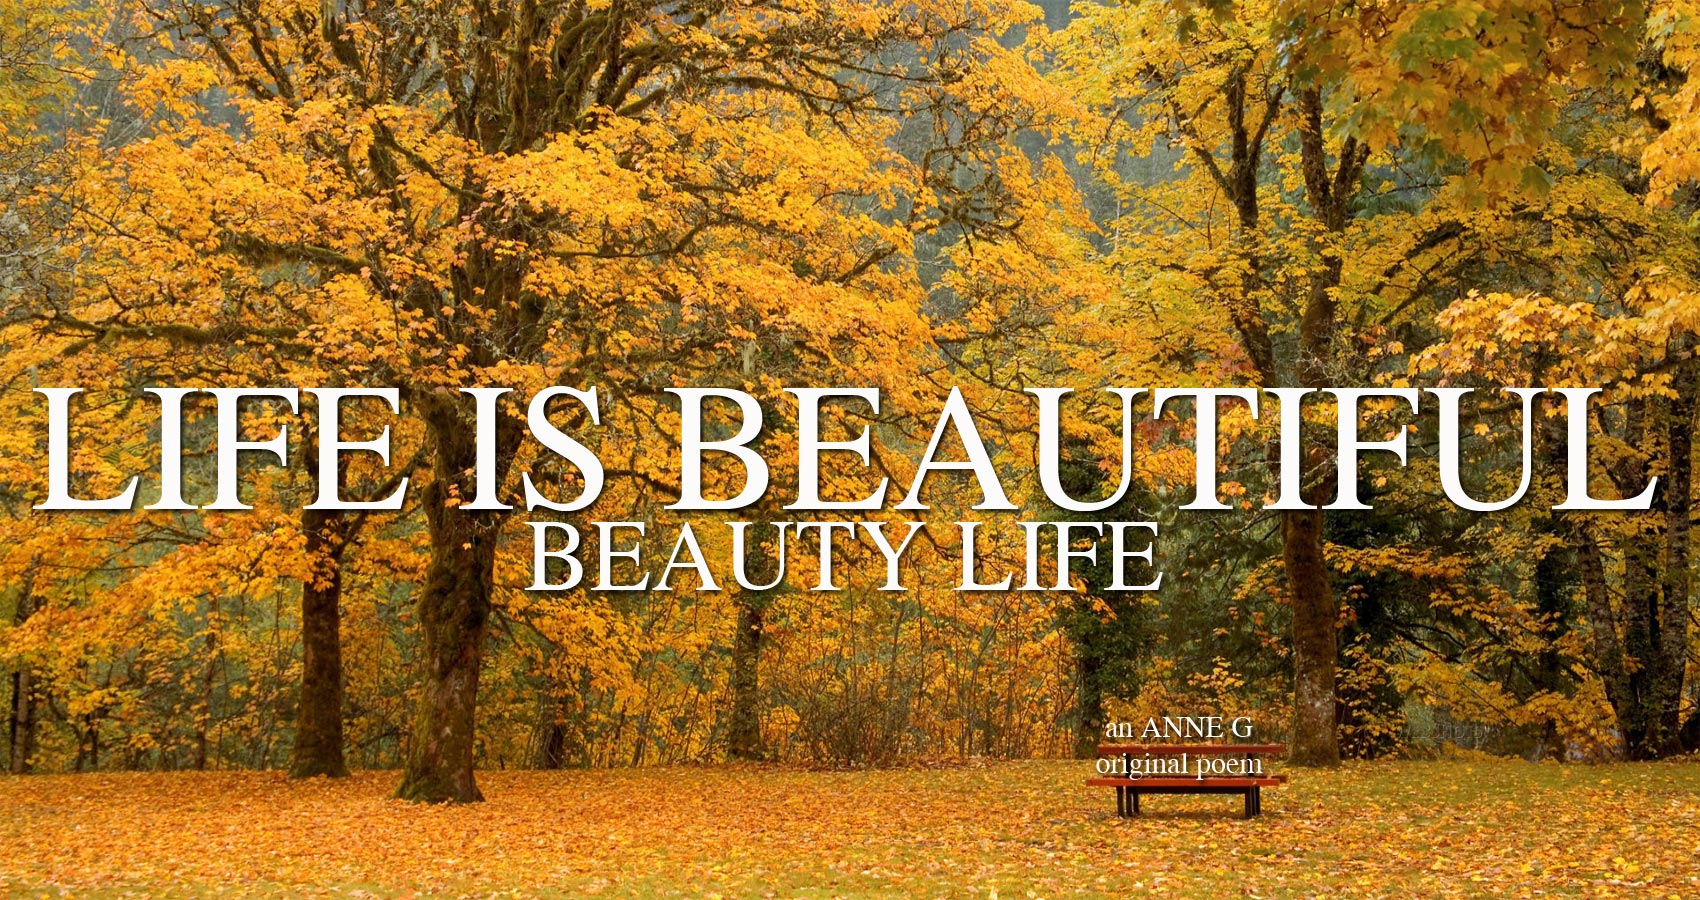 spillwords.com Life Is Beautiful Beauty Life by Anne G